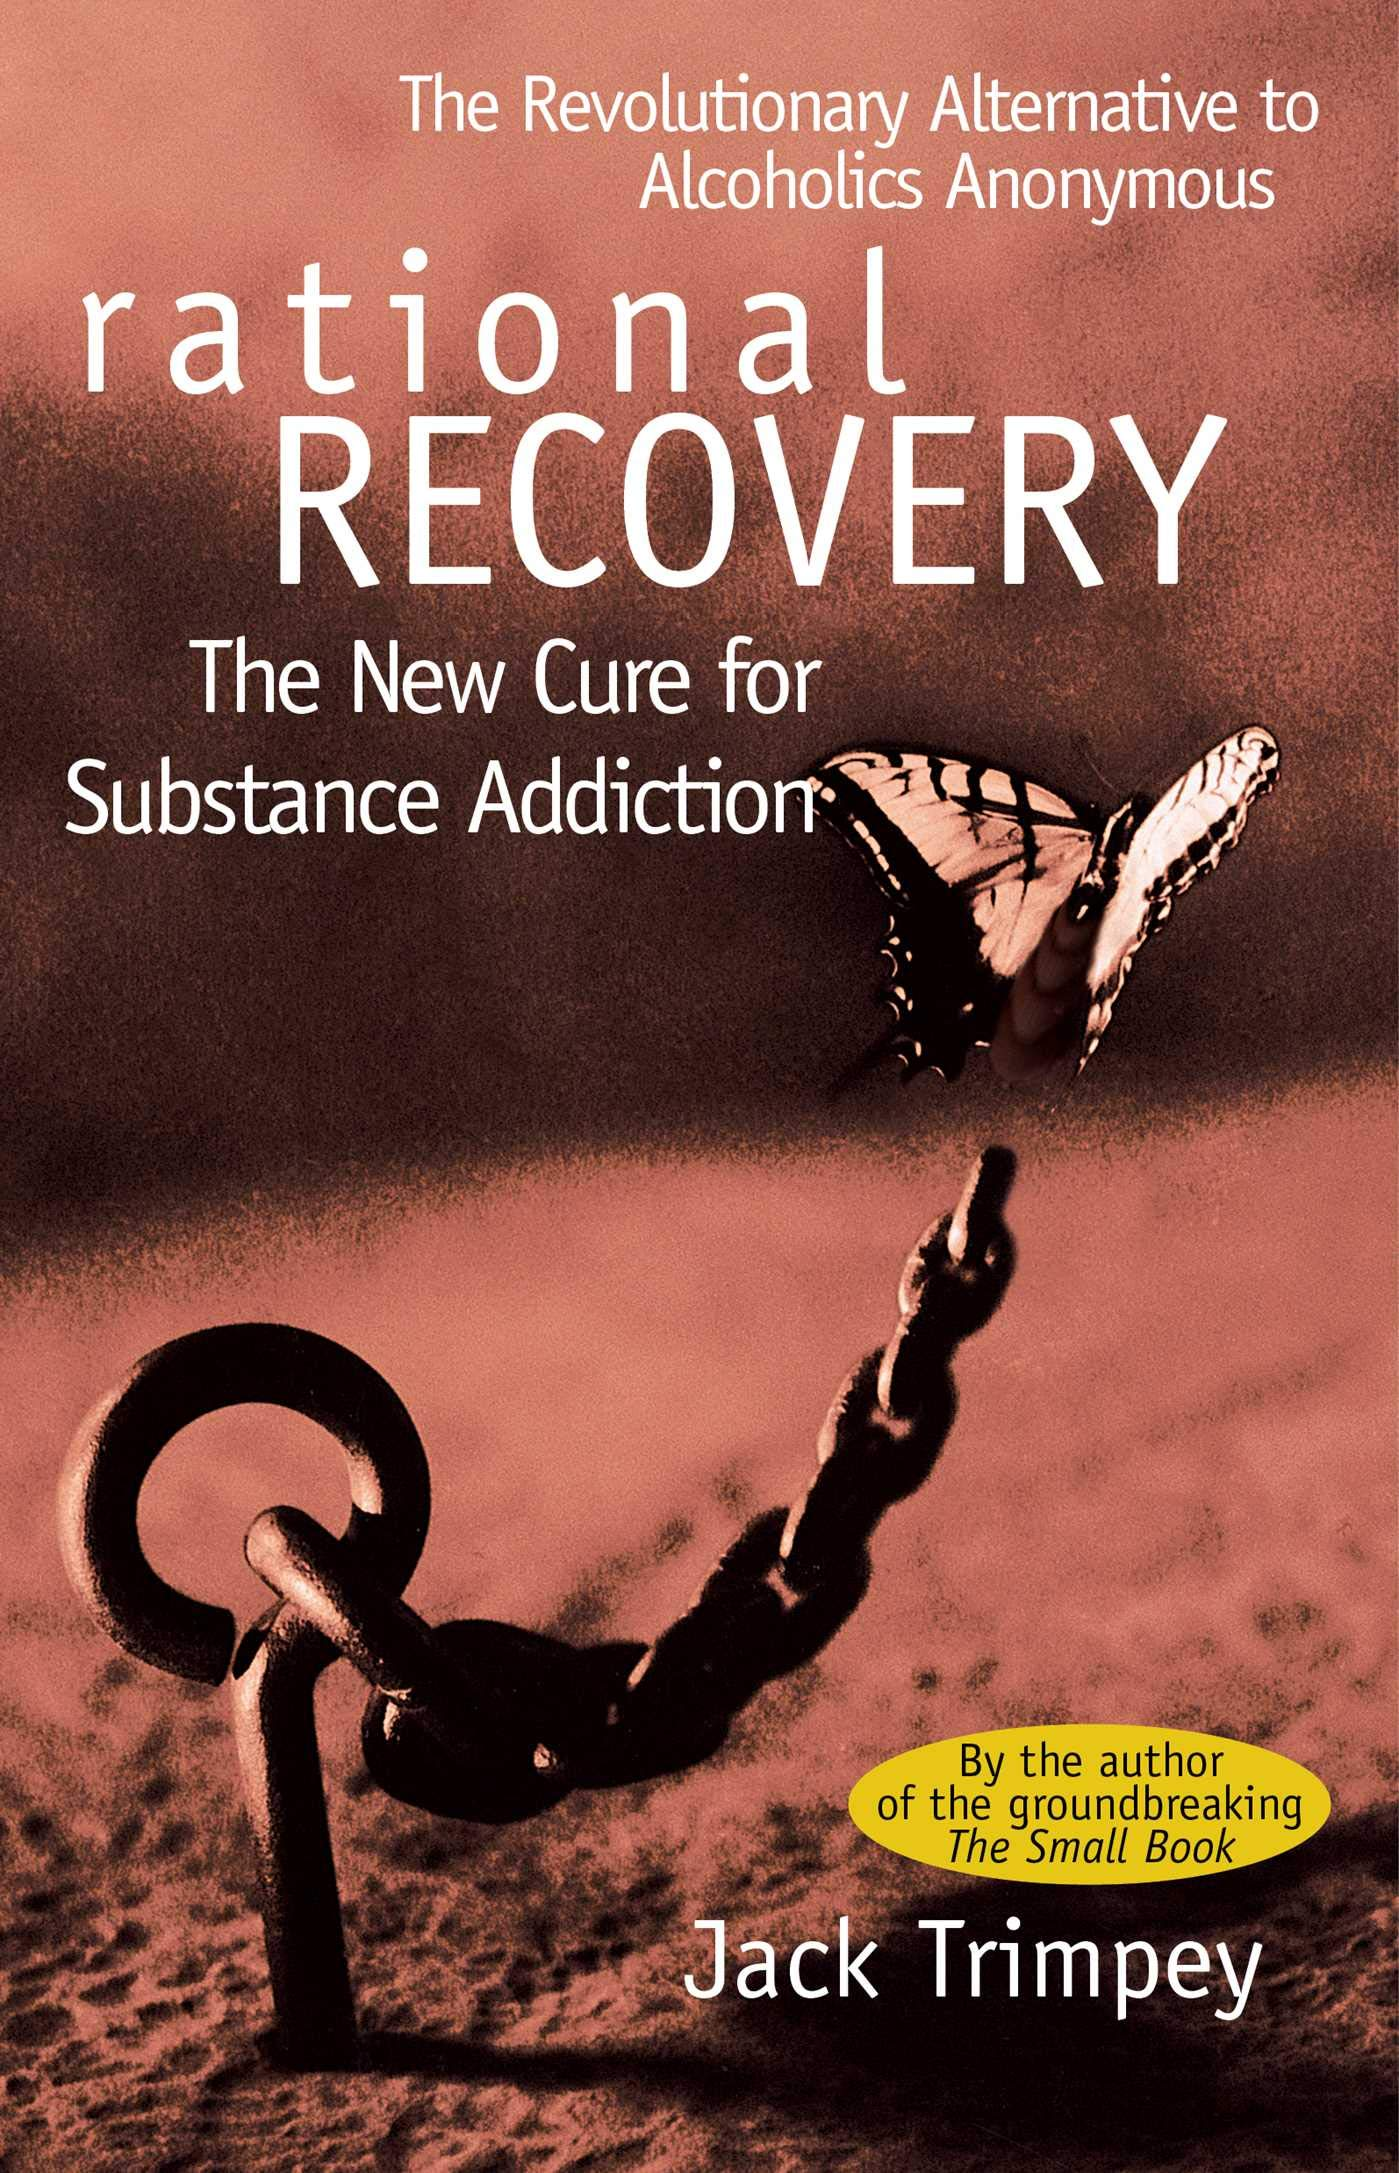 Image OfRational Recovery: The New Cure For Substance Addiction